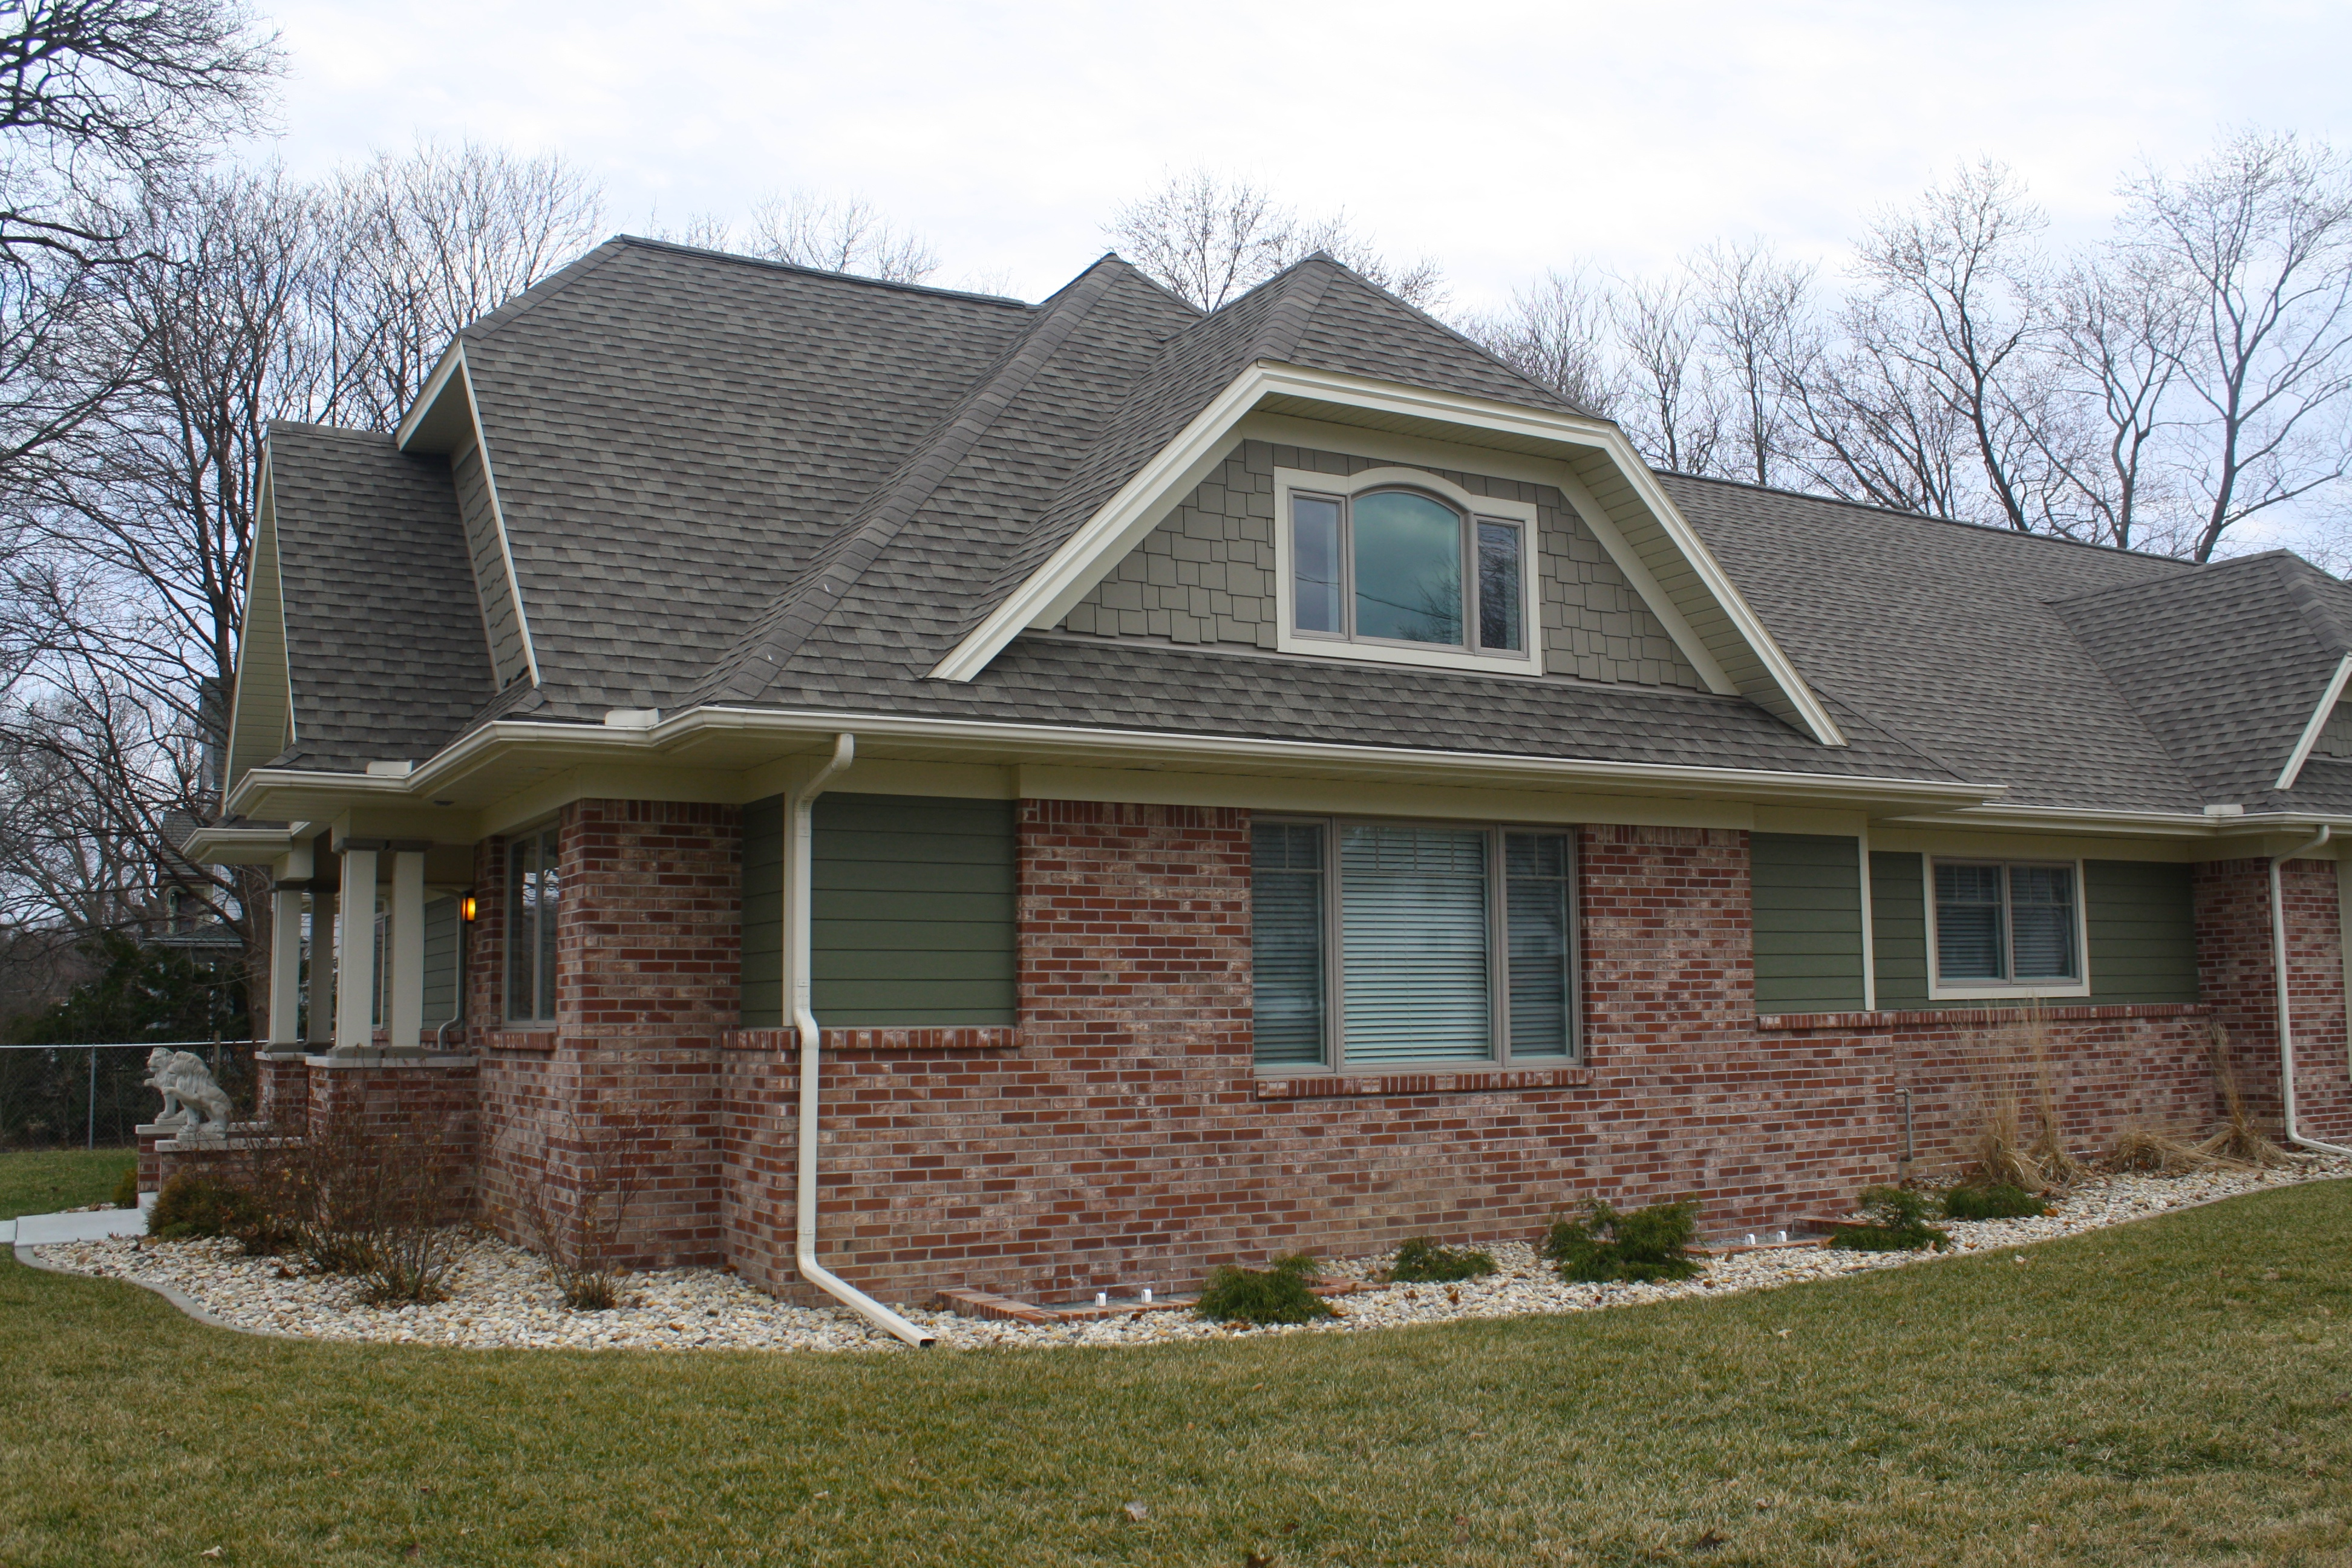 A House With Steep Roof Lots Of Red Brick And Green Siding